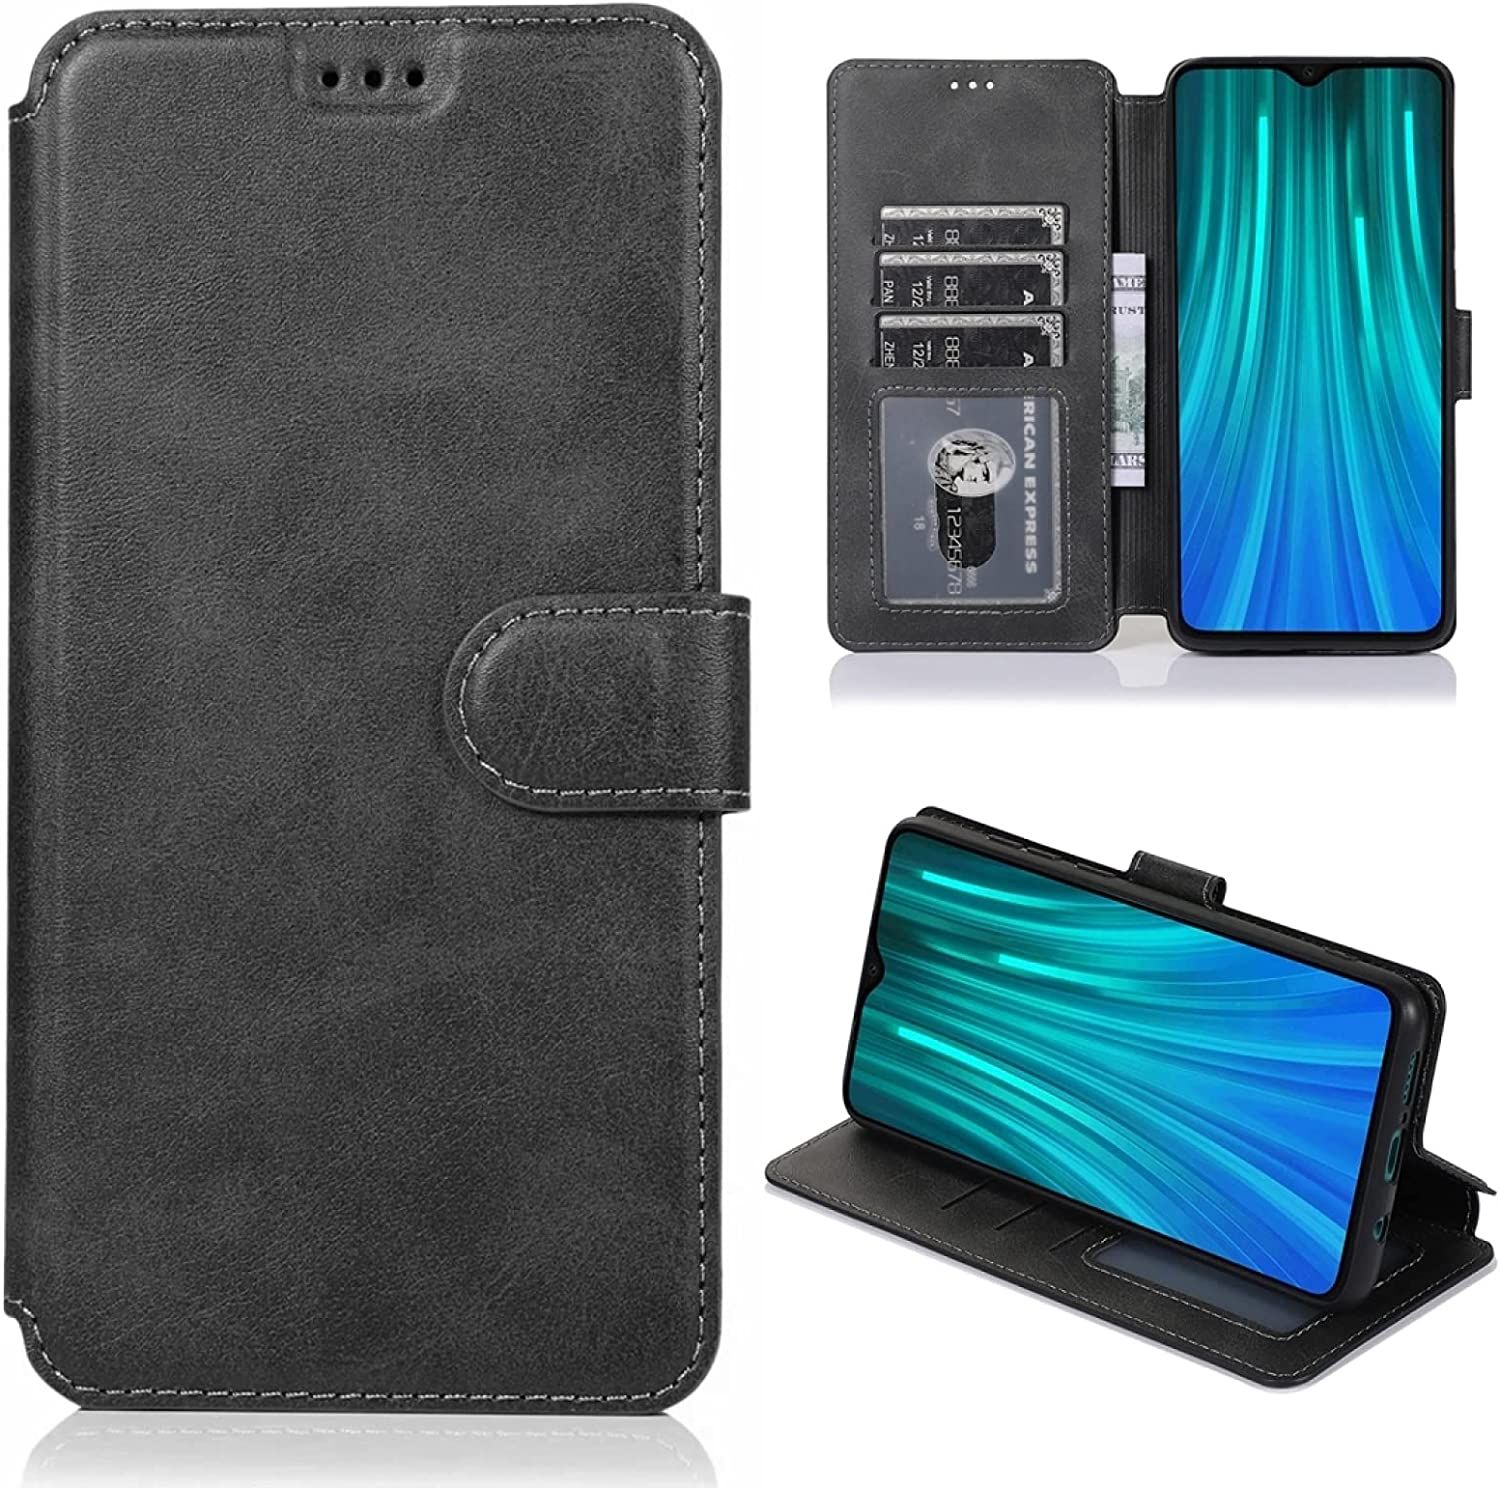 LUNCA for New product Manufacturer OFFicial shop type Xiaomi Redmi Note 8 Magnetic Texture Pro Calf H Buckle